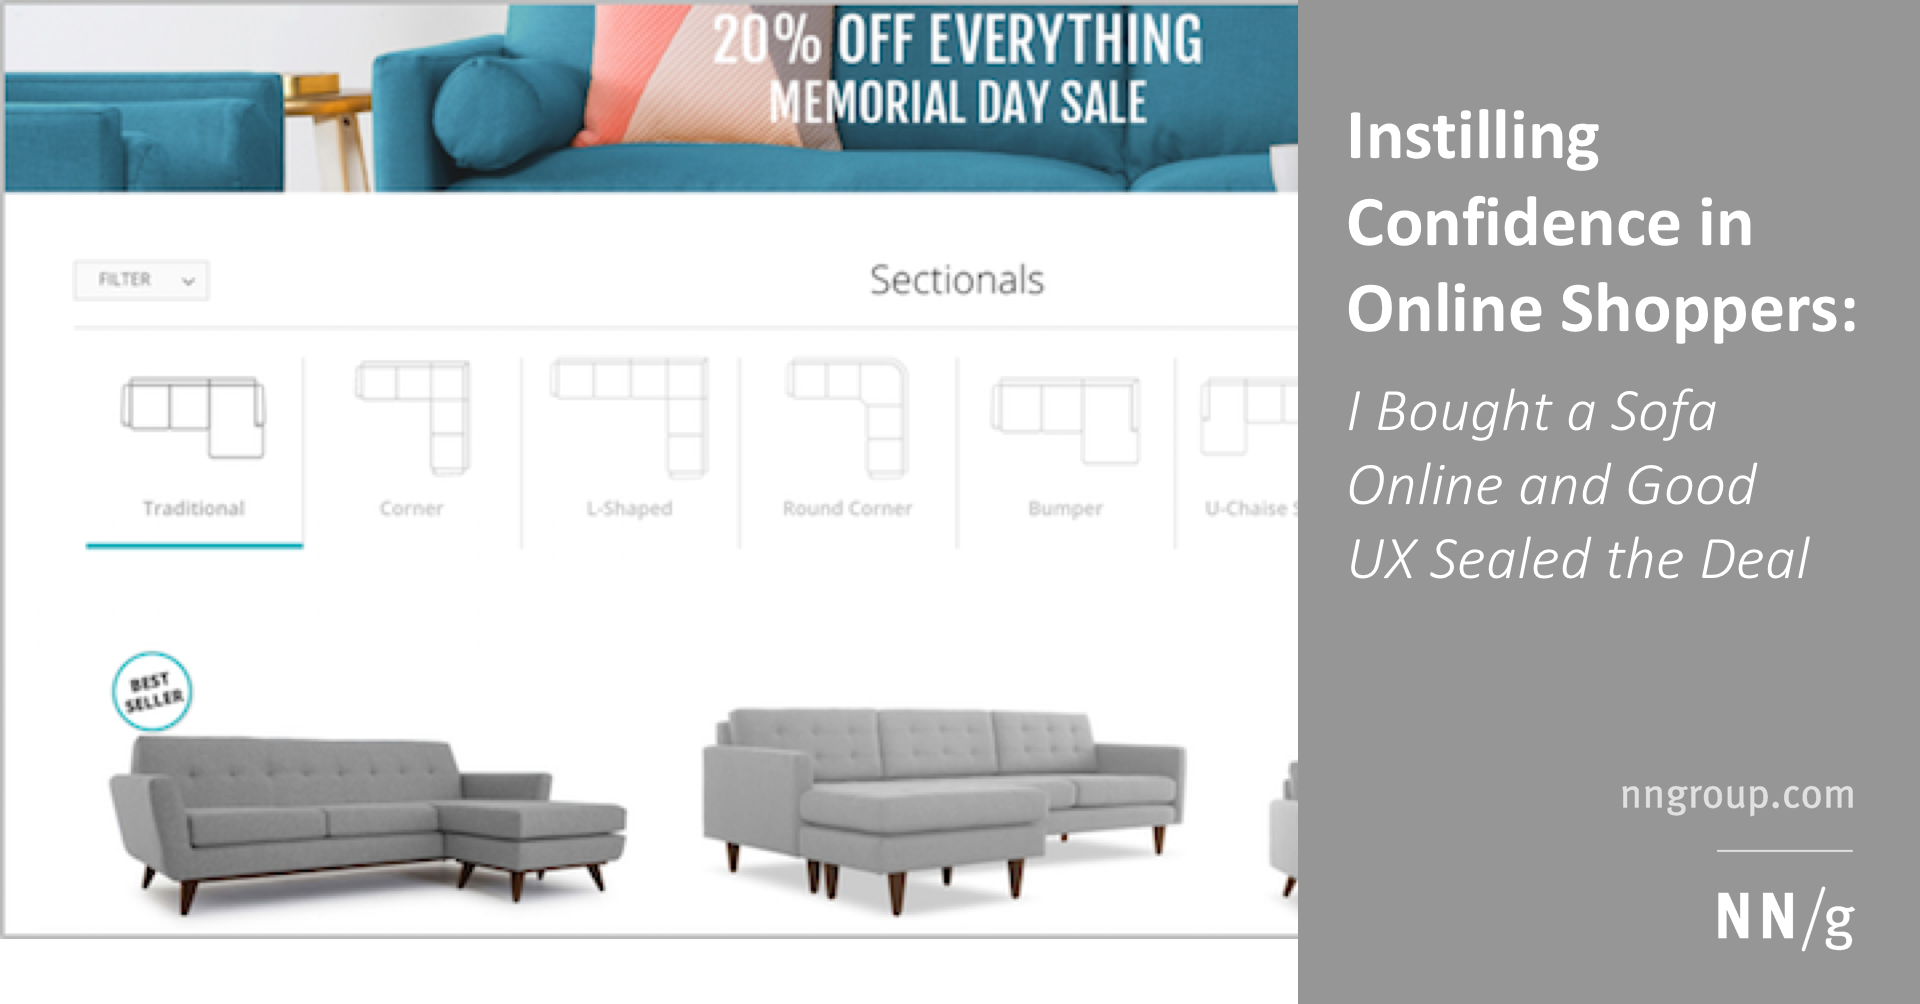 Instilling Confidence in Online Shoppers: I Bought a Sofa Online and ...